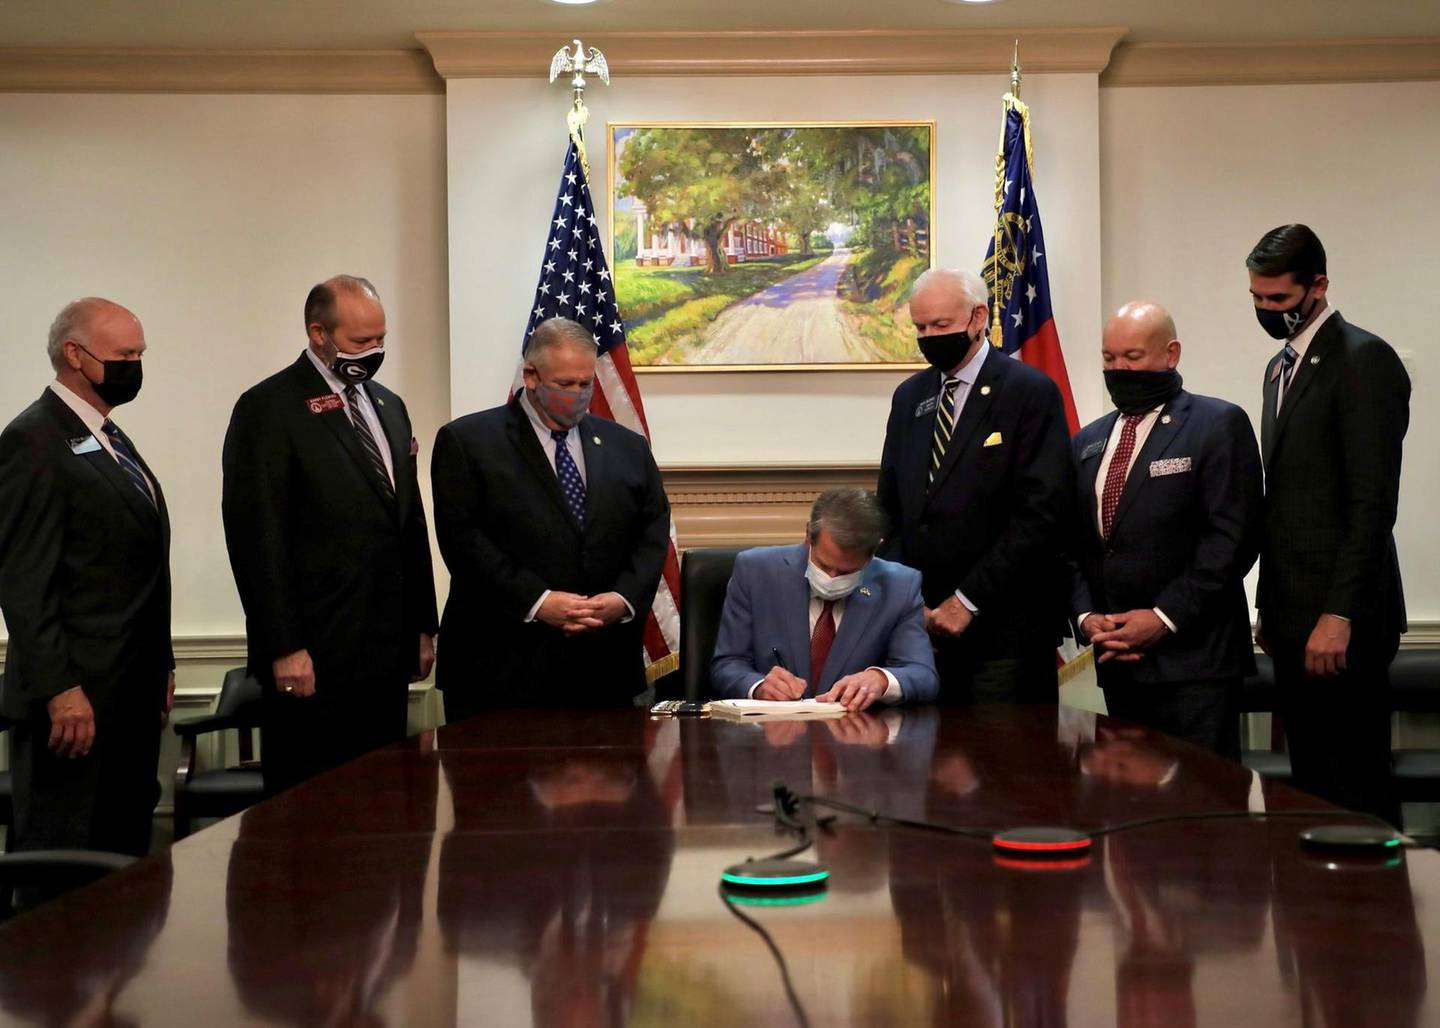 Republican Governor Brian Kemp signs the law S.B. 202, a restrictive voting law that activists have said aimed to curtail the influence of Black voters who were instrumental in state elections that helped Democrats win the White House and narrow control of the U.S. Senate, in this handout photo posted to Kemp's Twitter feed on March 25, 2021. Governor Brian Kemp's Twitter feed/Handout via REUTERS  THIS IMAGE HAS BEEN SUPPLIED BY A THIRD PARTY.